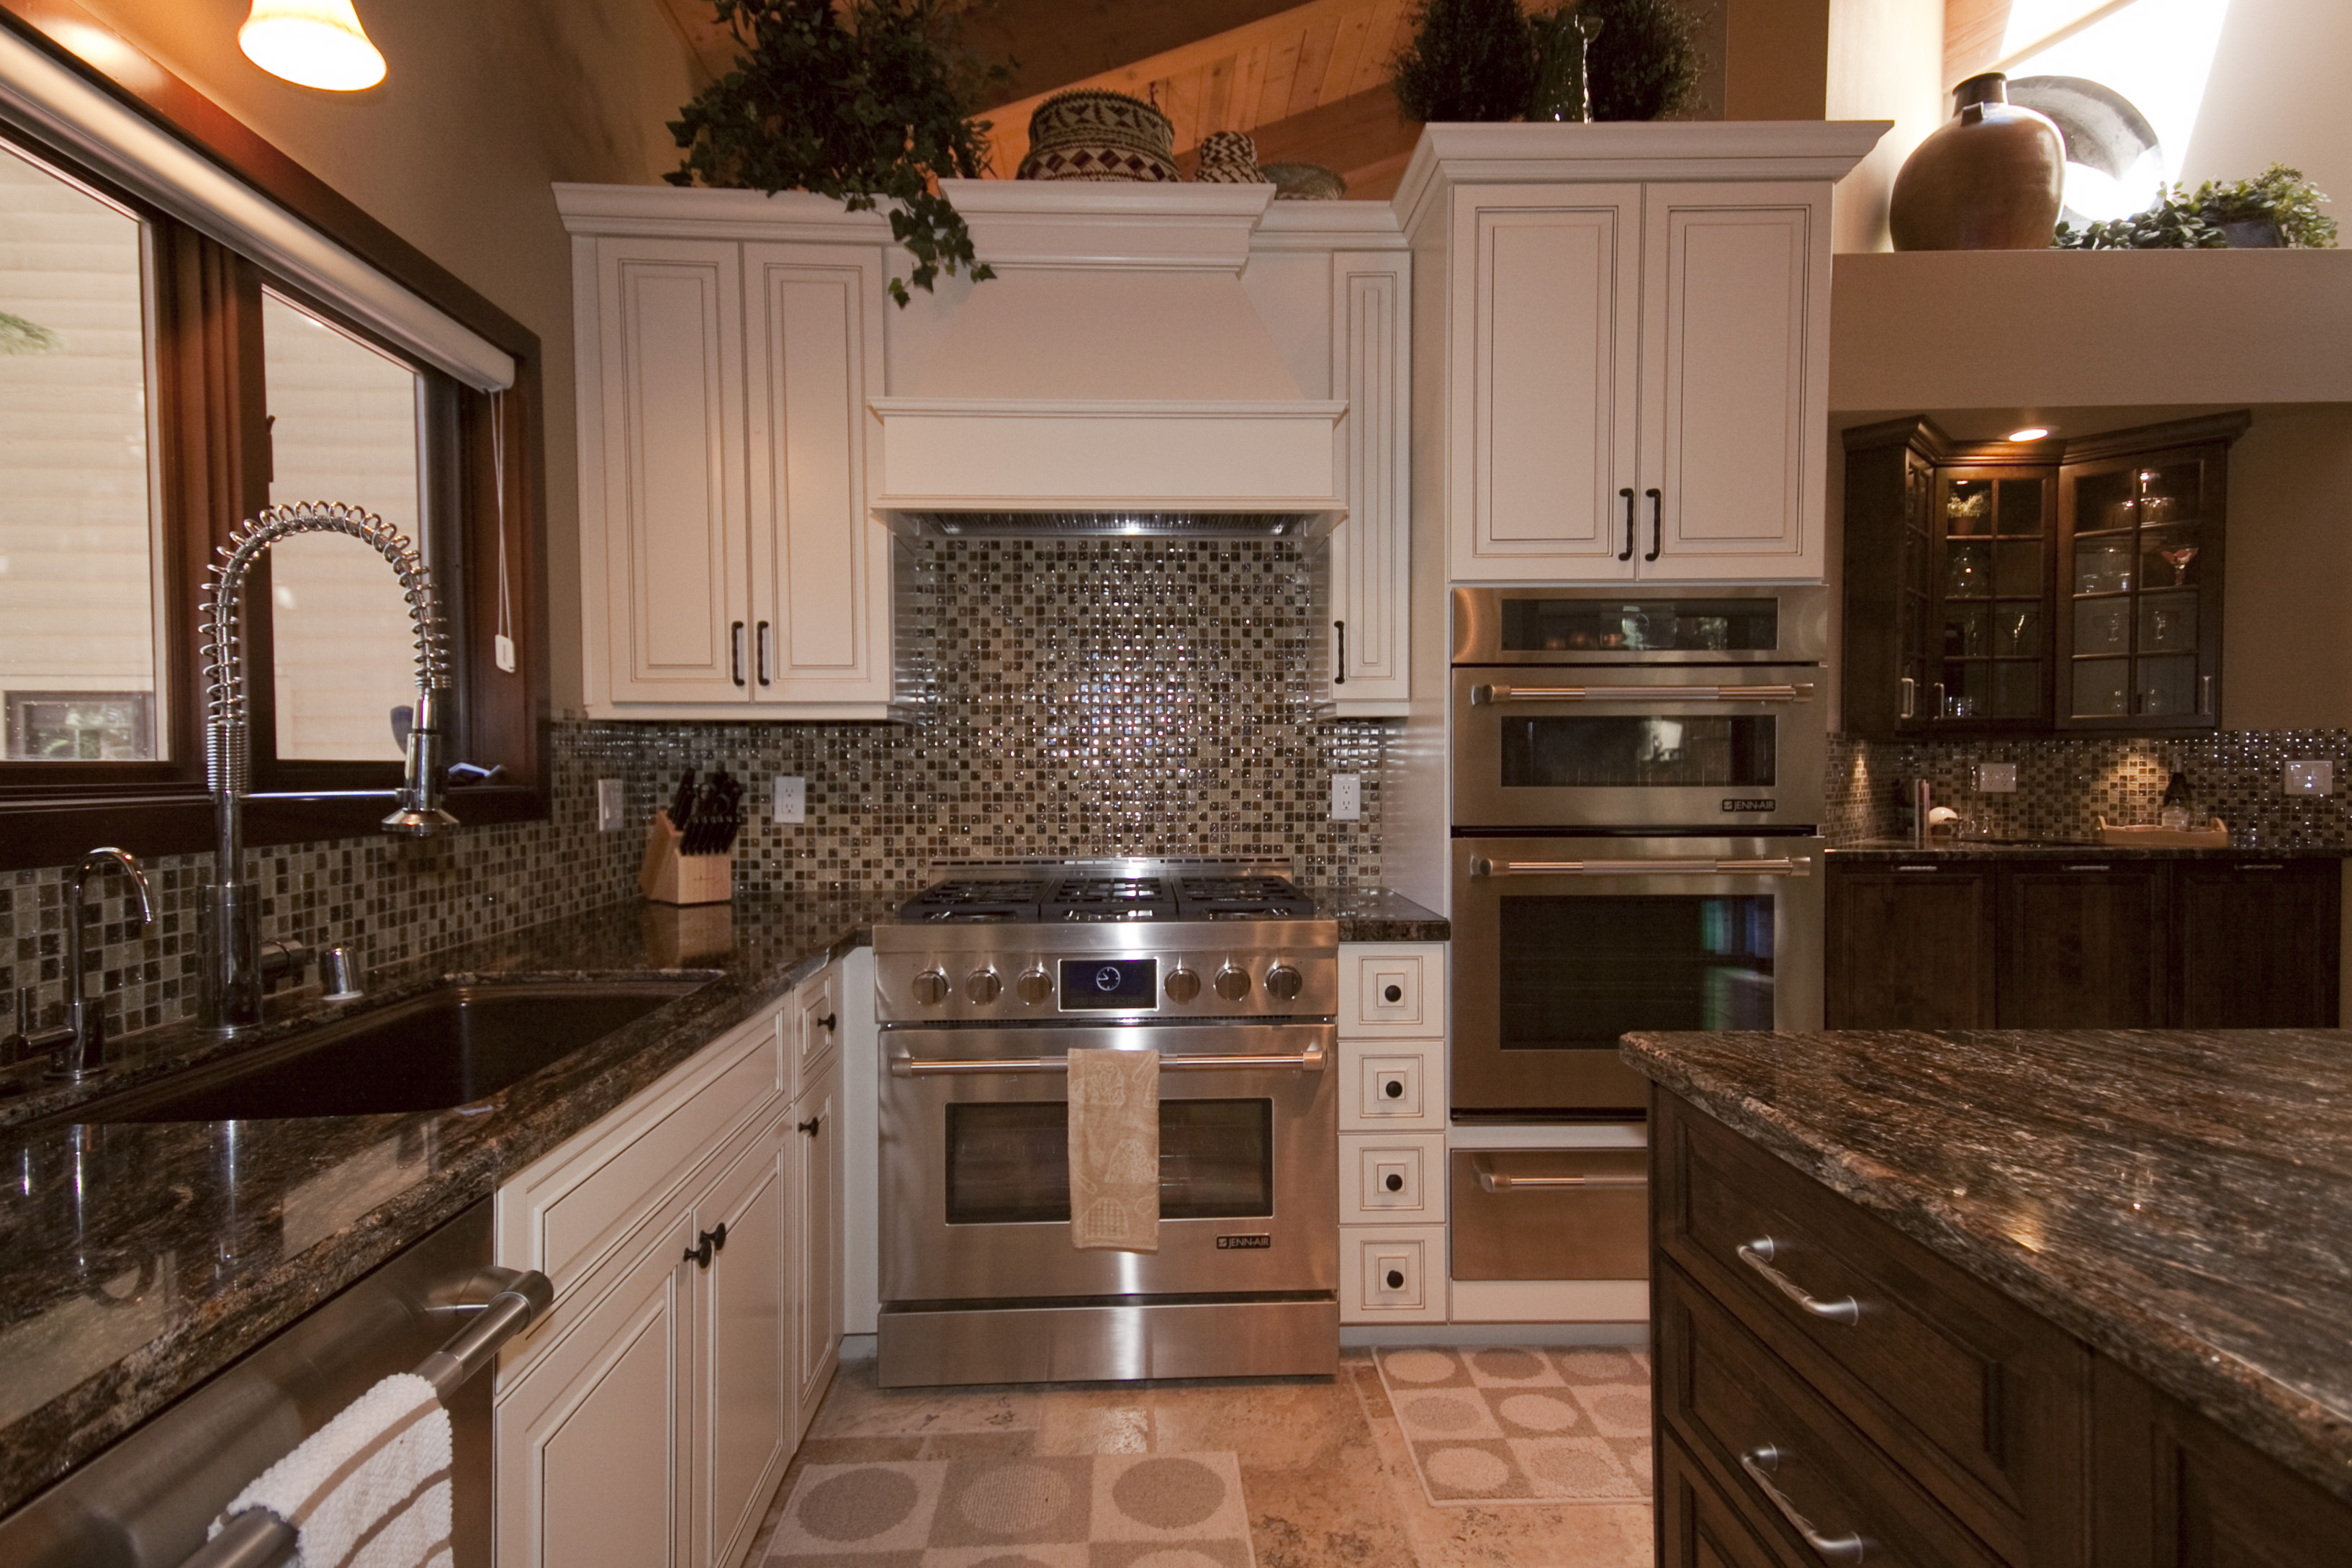 kitchen remodel remodeling kitchen cabinets Remodeled Kitchen Pictures